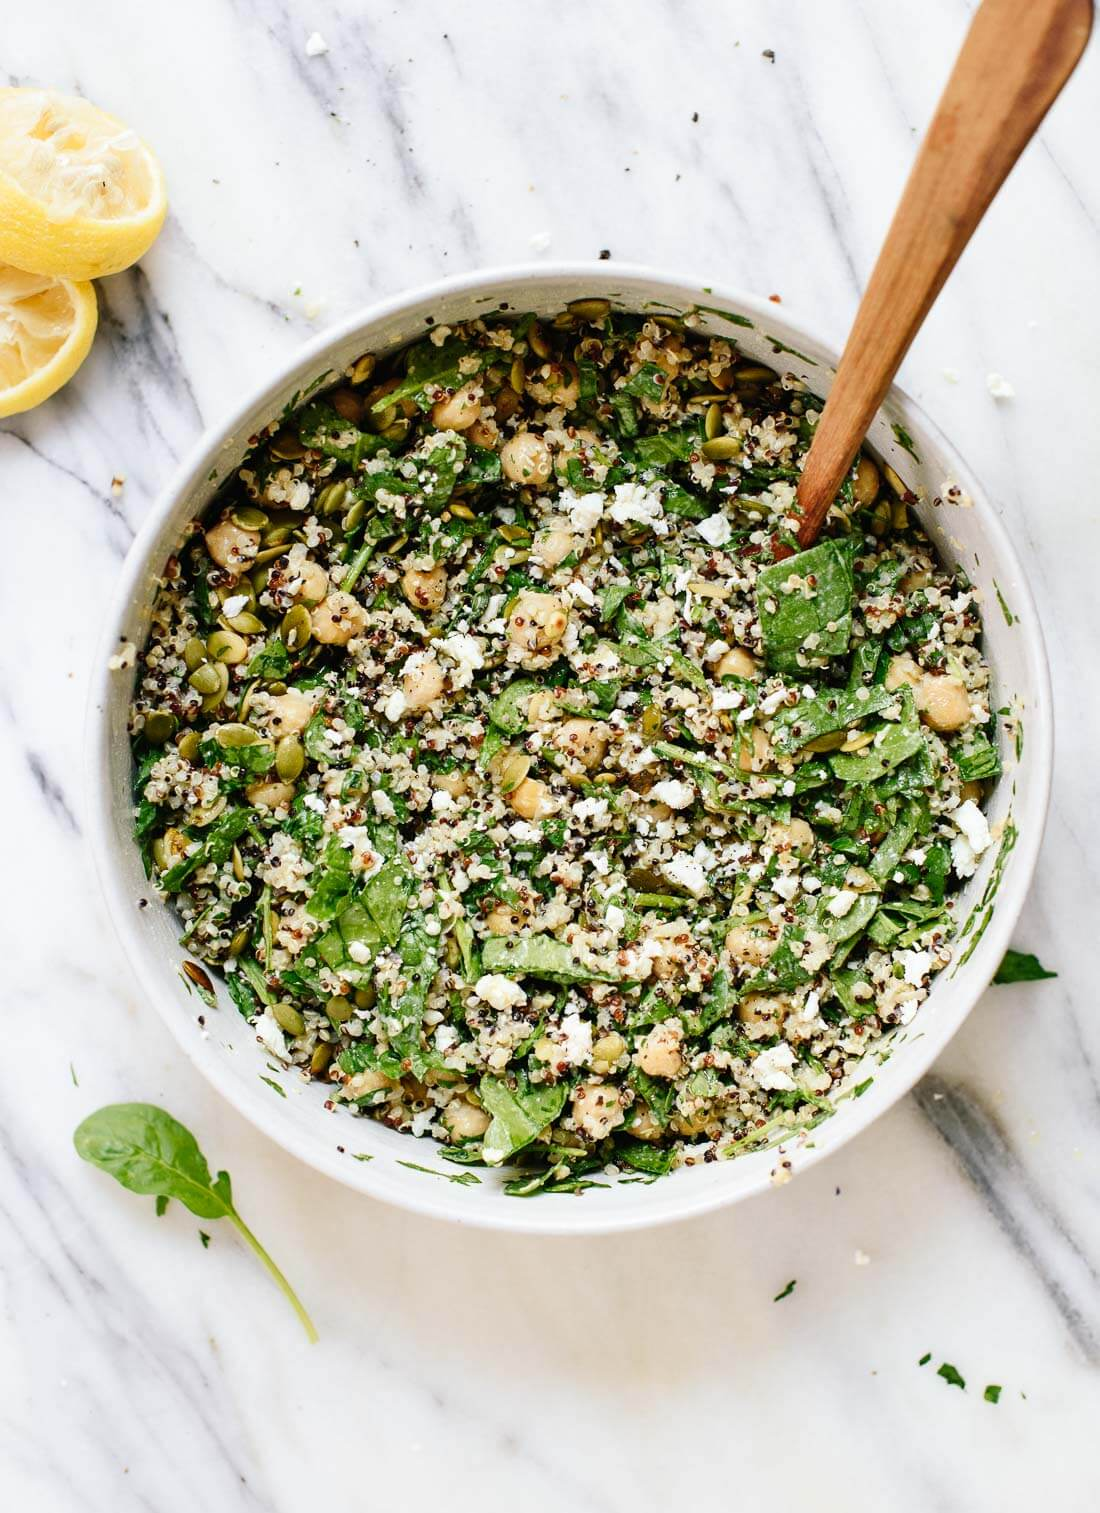 Healthy, hearty chickpea quinoa salad with lots of herbs and a delicious lemon-tahini dressing - cookieandkate.com